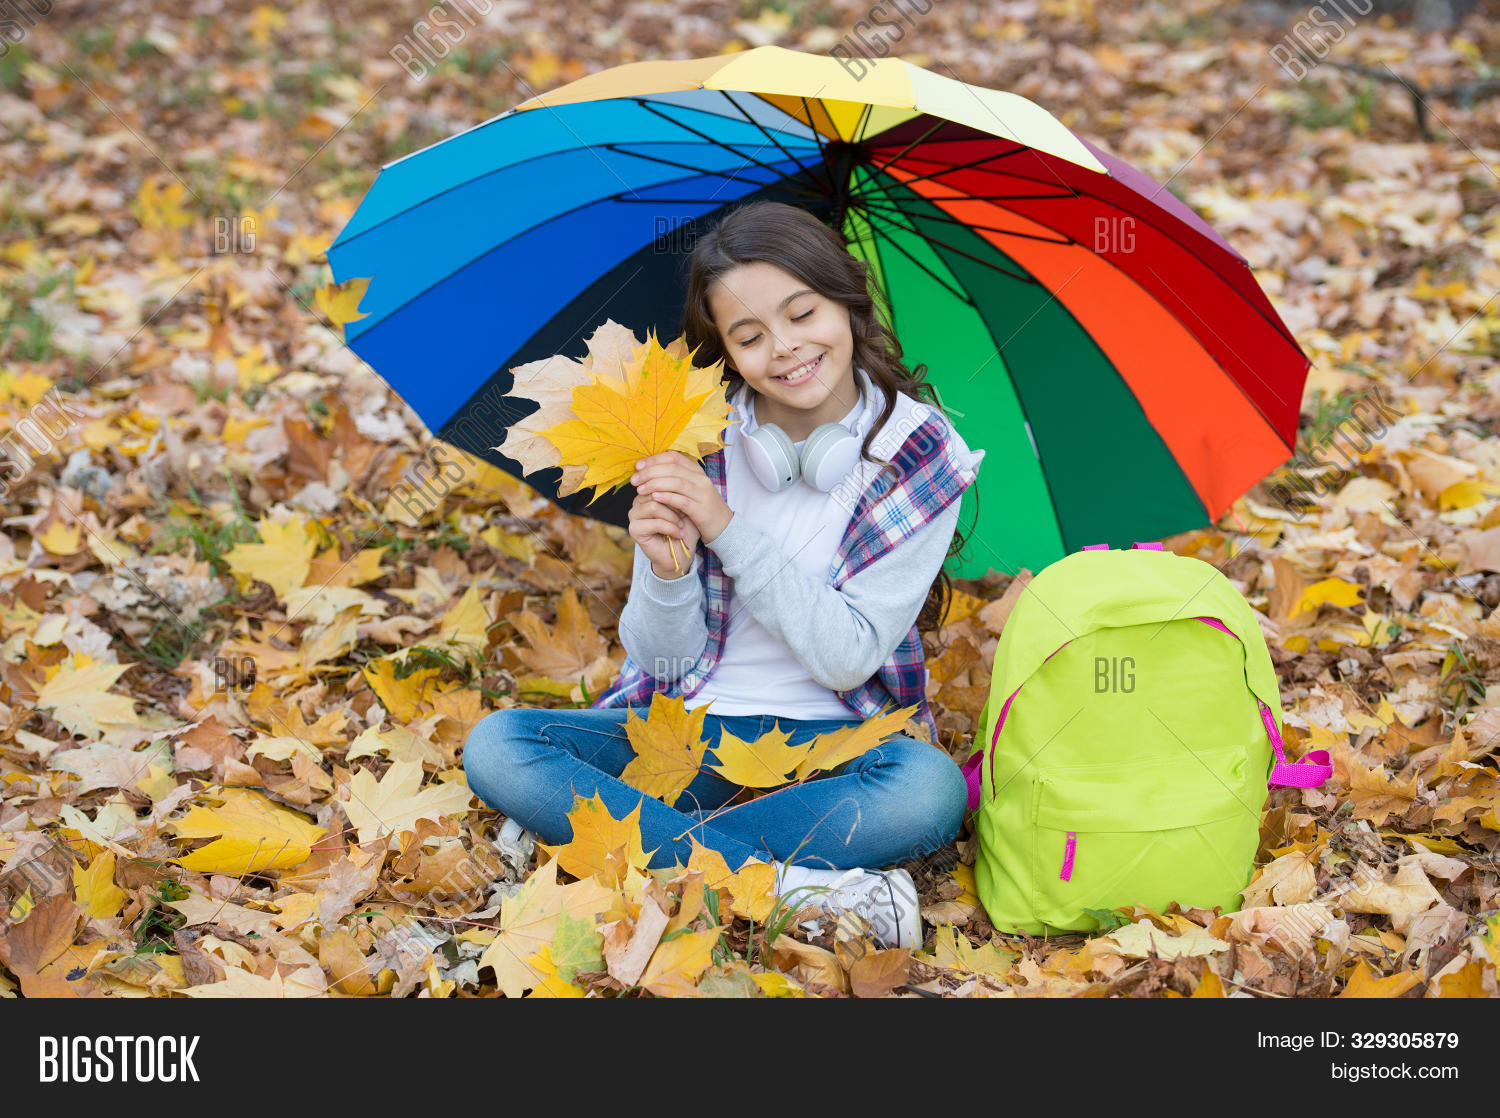 accessory,adorable,autumn,background,case,casual,child,childhood,color,colorful,cute,dry,enjoy,fall,fallen,fashion,fashionable,girl,gorgeous,hair,headphones,her,it,keep,kid,leaves,little,long,look,lovely,music,rain,rainbow,rainy,school,schoolchild,season,sit,small,style,stylish,trend,trendy,umbrella,under,weather